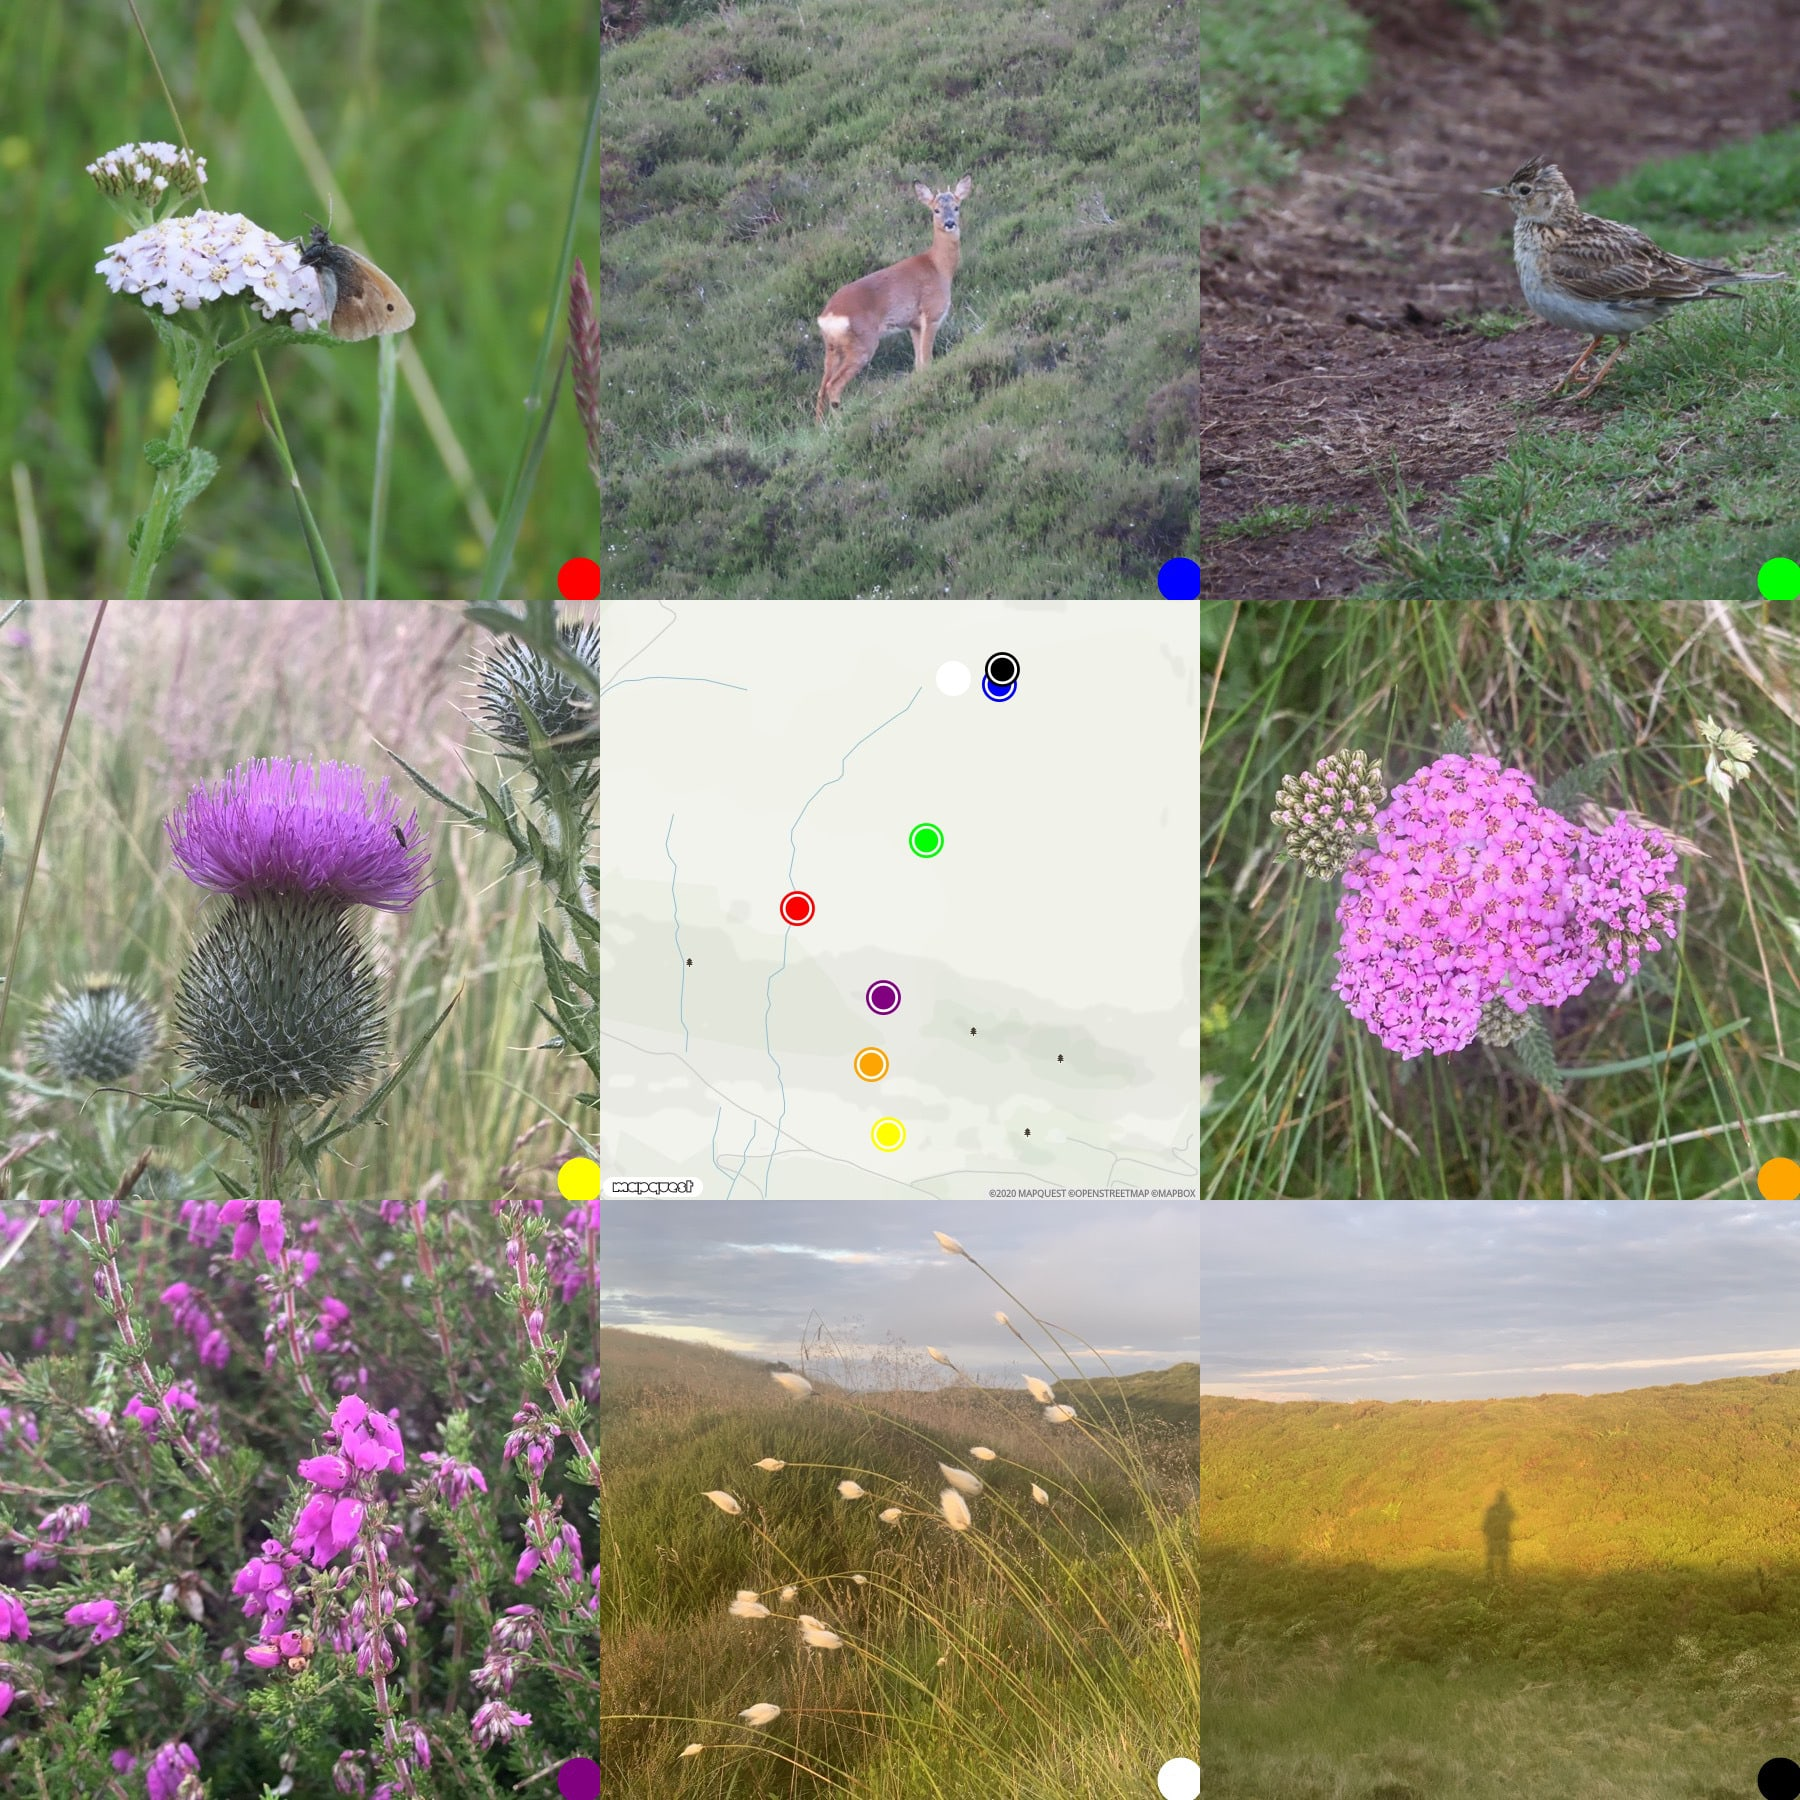 grid of 8 photos with a map in the middle. Flora and Fauna from Kilpatrick Braes